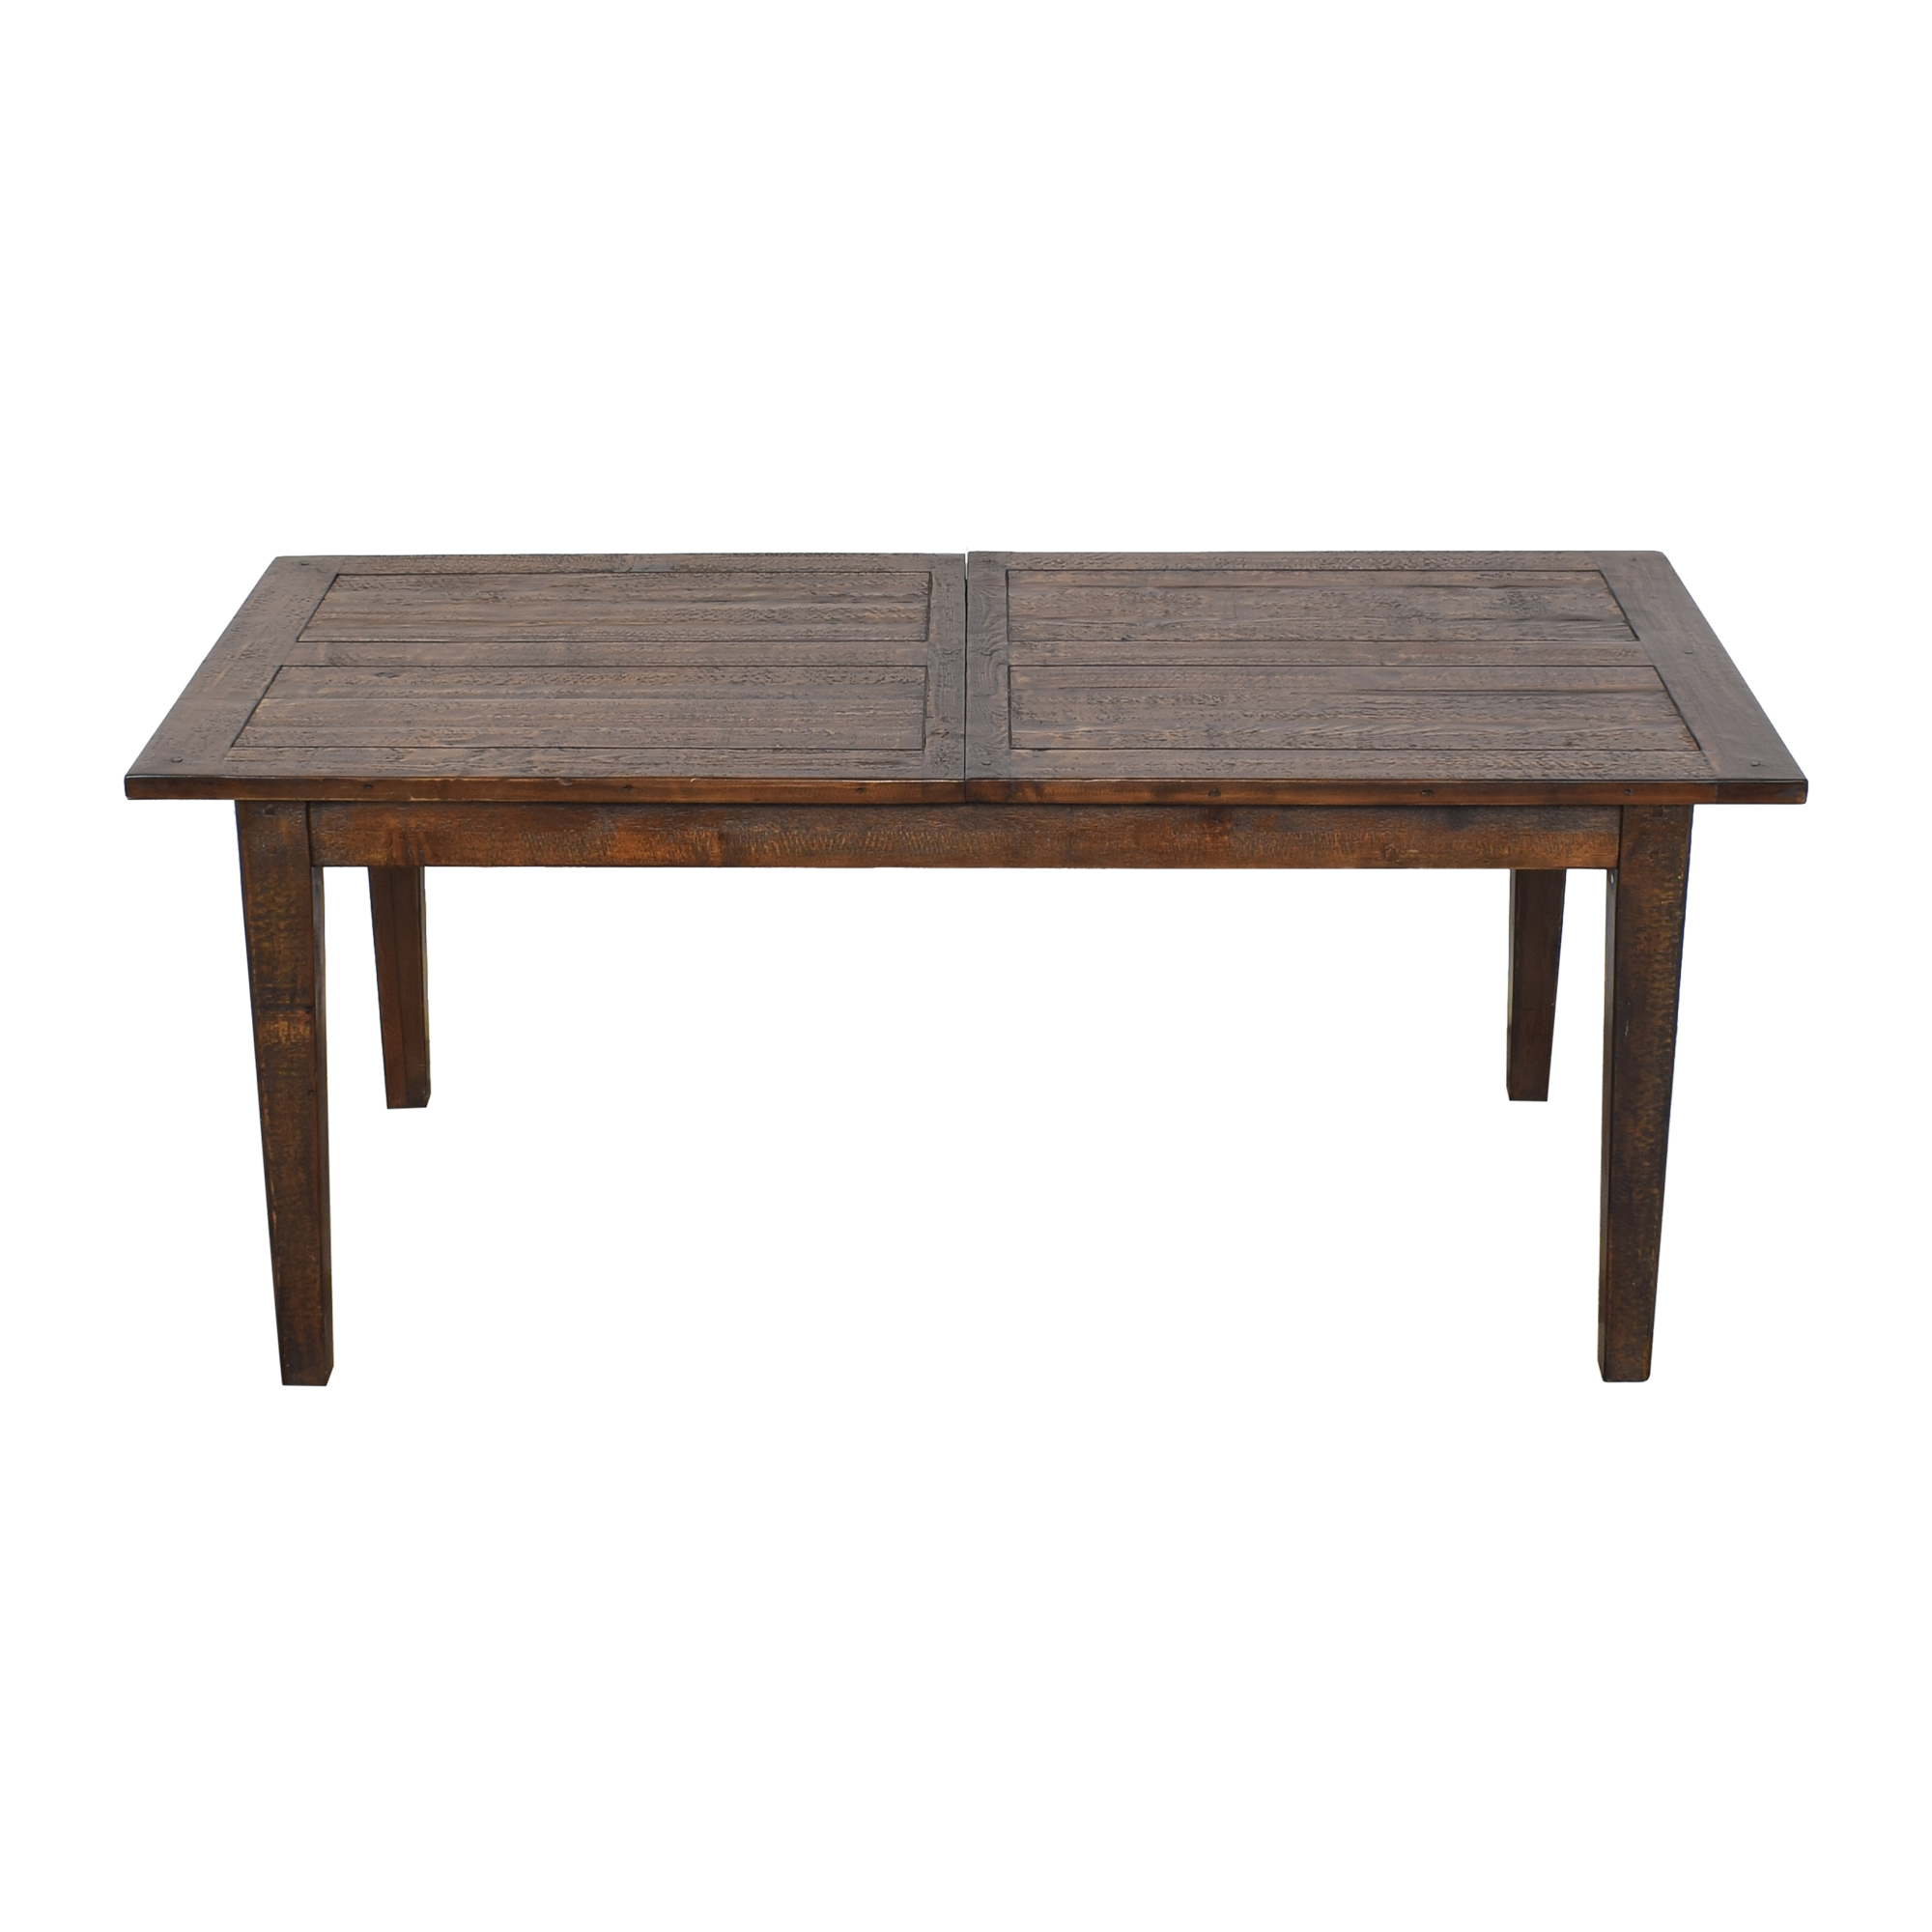 Restoration Hardware Restoration Hardware Extendable Dining Table